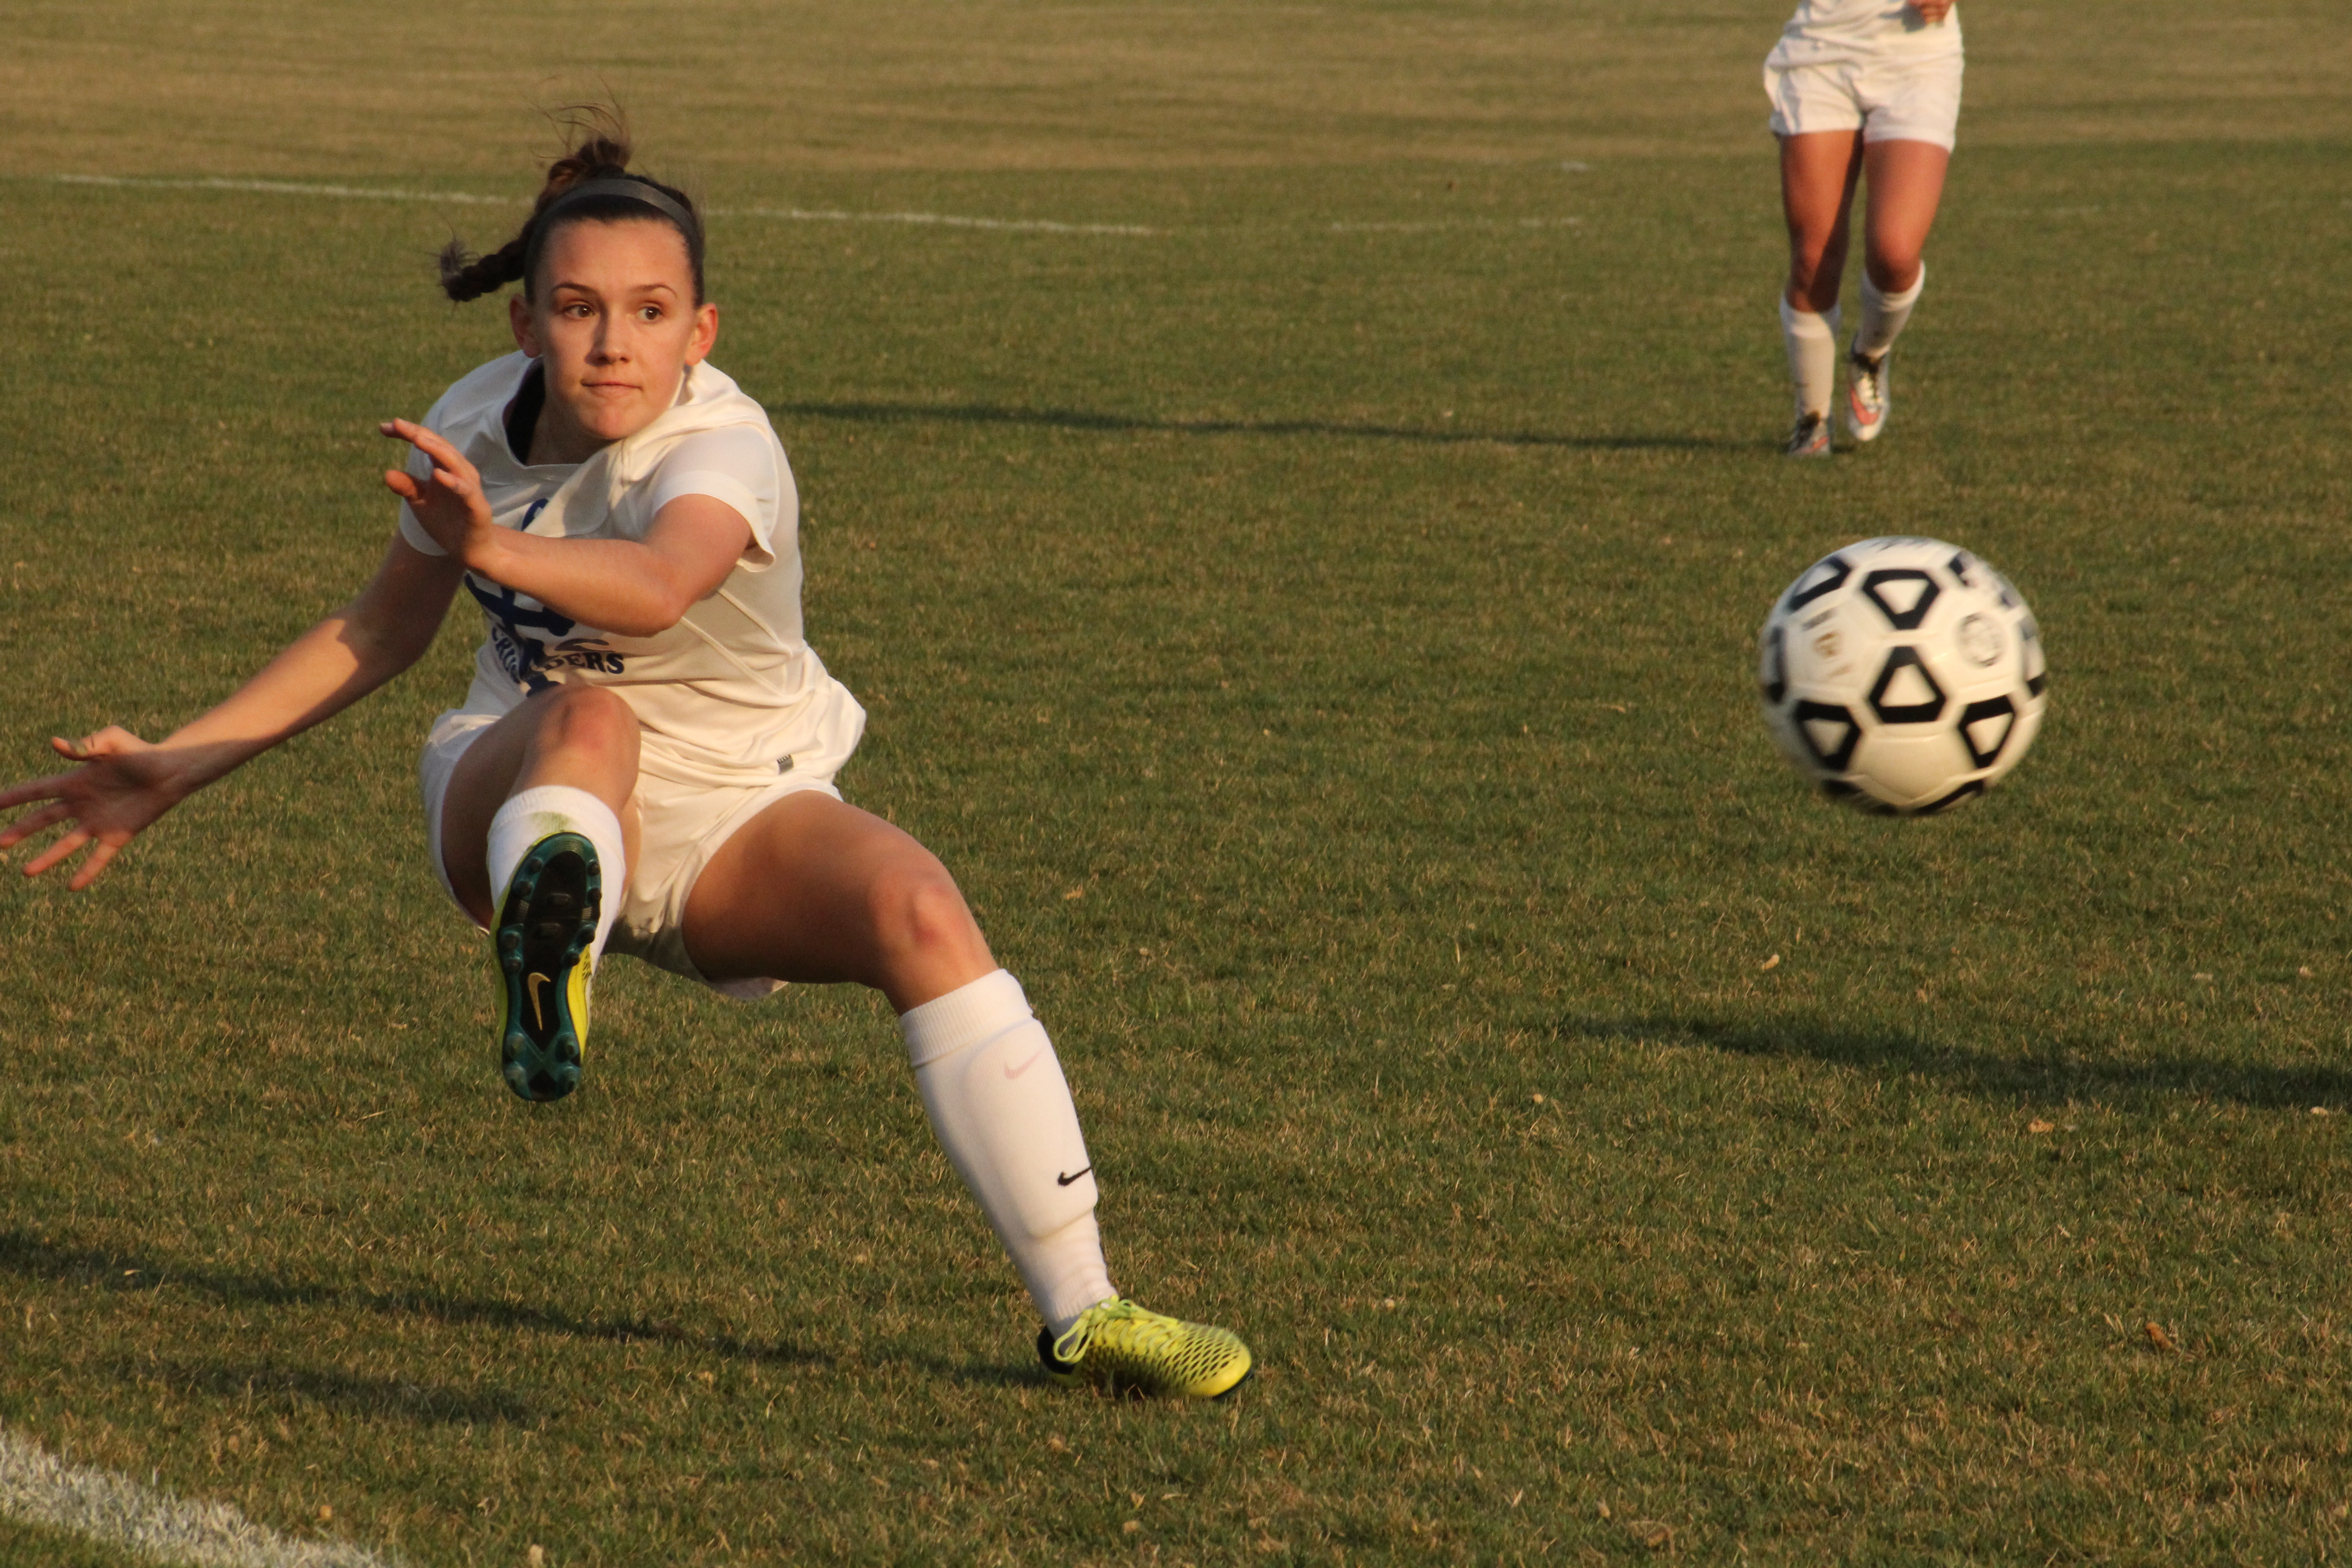 Kaley Ball kicks the ball before it goes out of bounds to a teamate during her soccer game at the Stryker complex on March 23 Anna Craig, Staff photographer